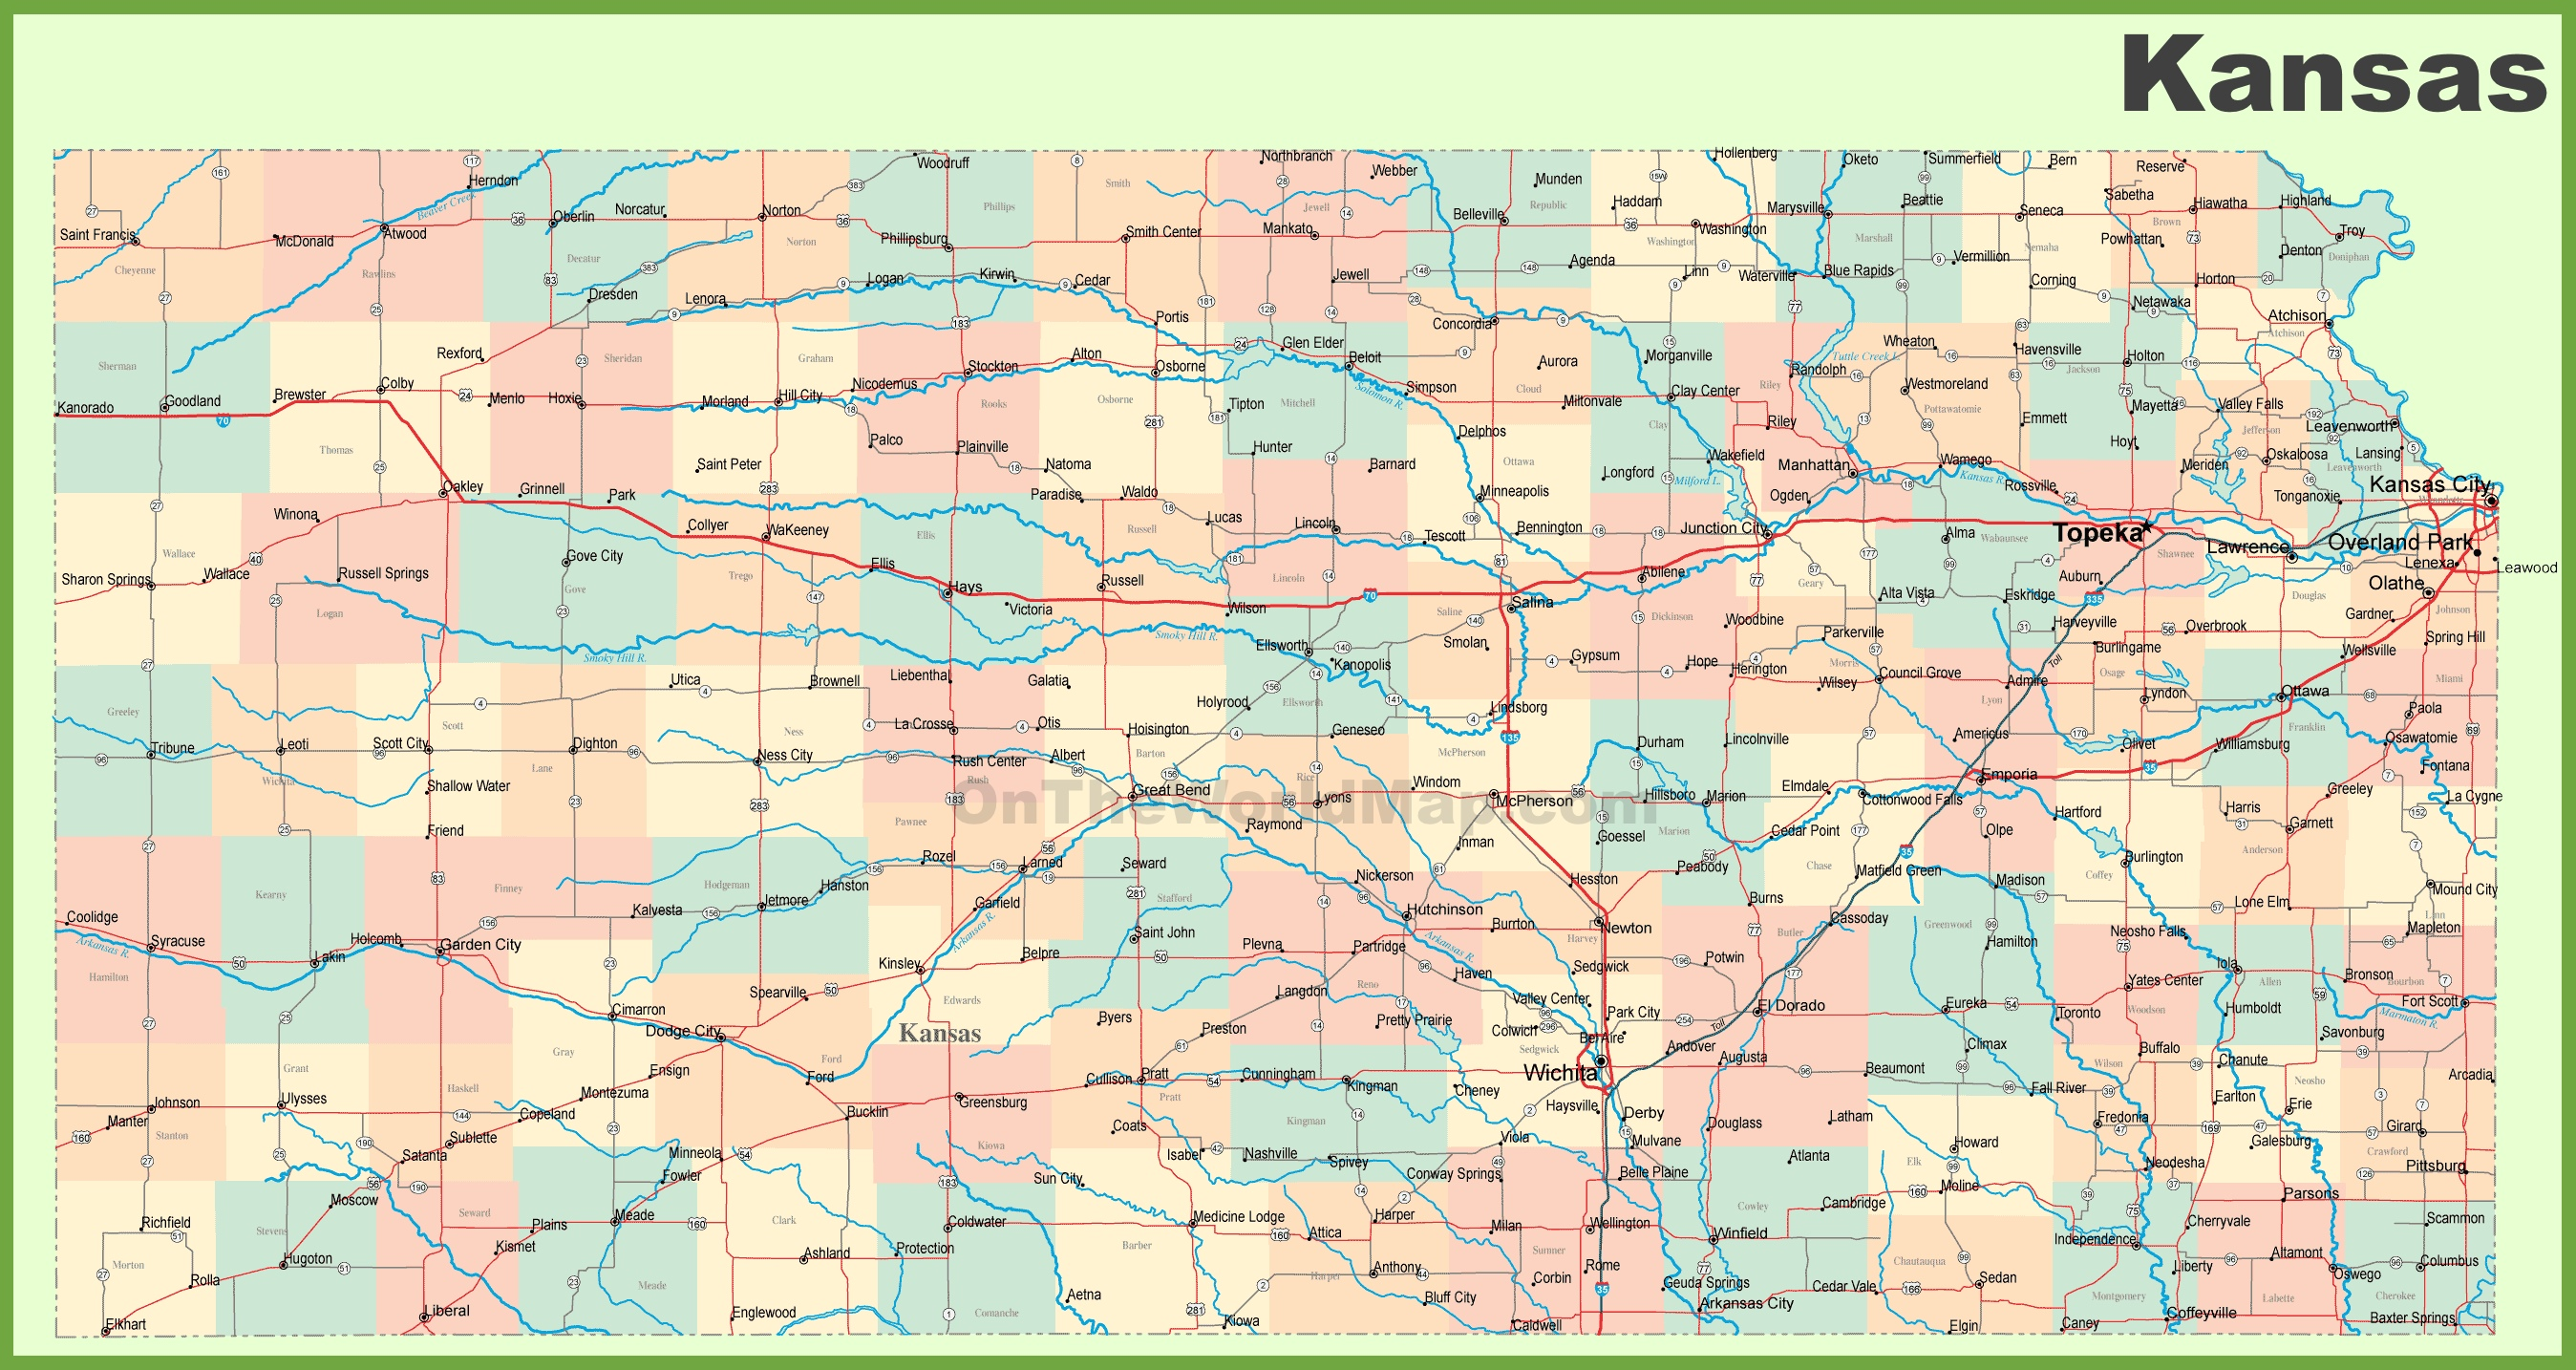 Road Map Of Kansas With Cities - Road map of kansas